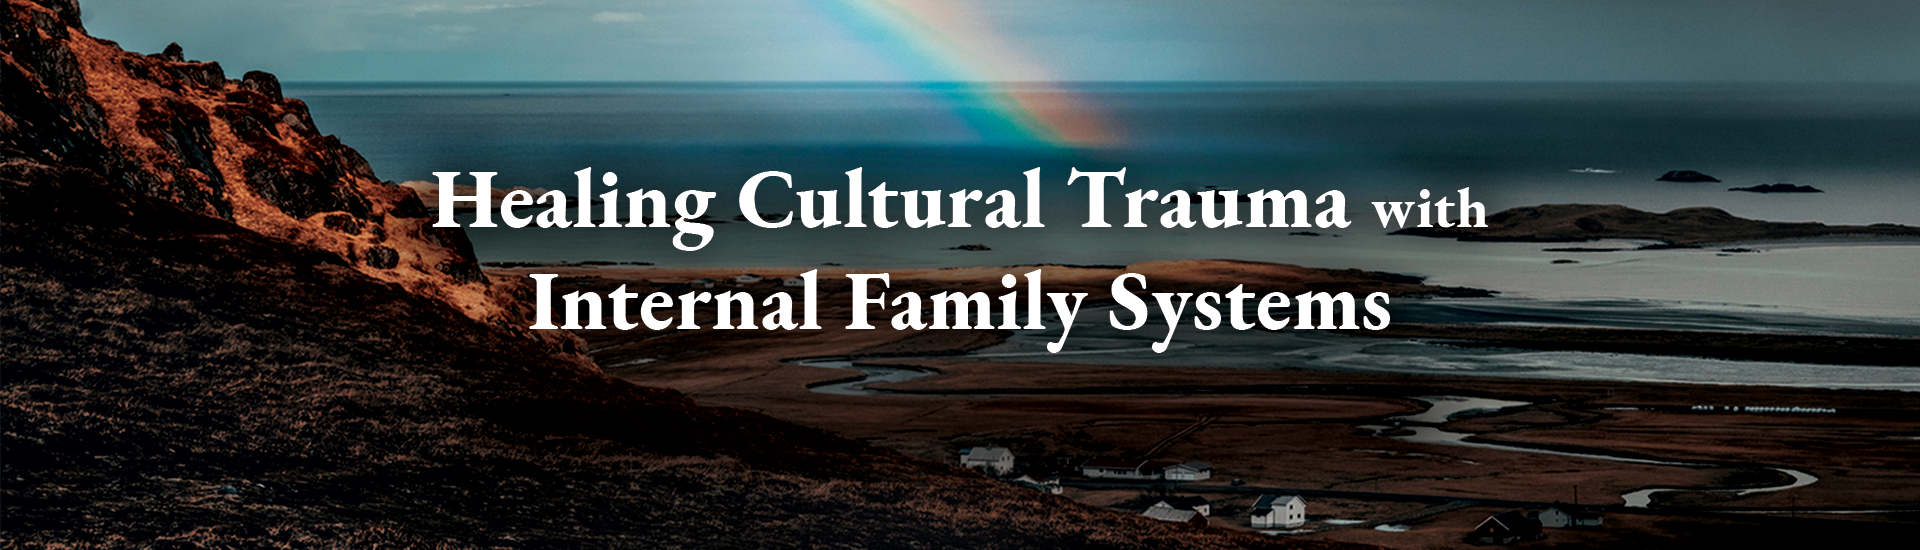 Healing Cultural Trauma with Internal Family Systems (IFS)